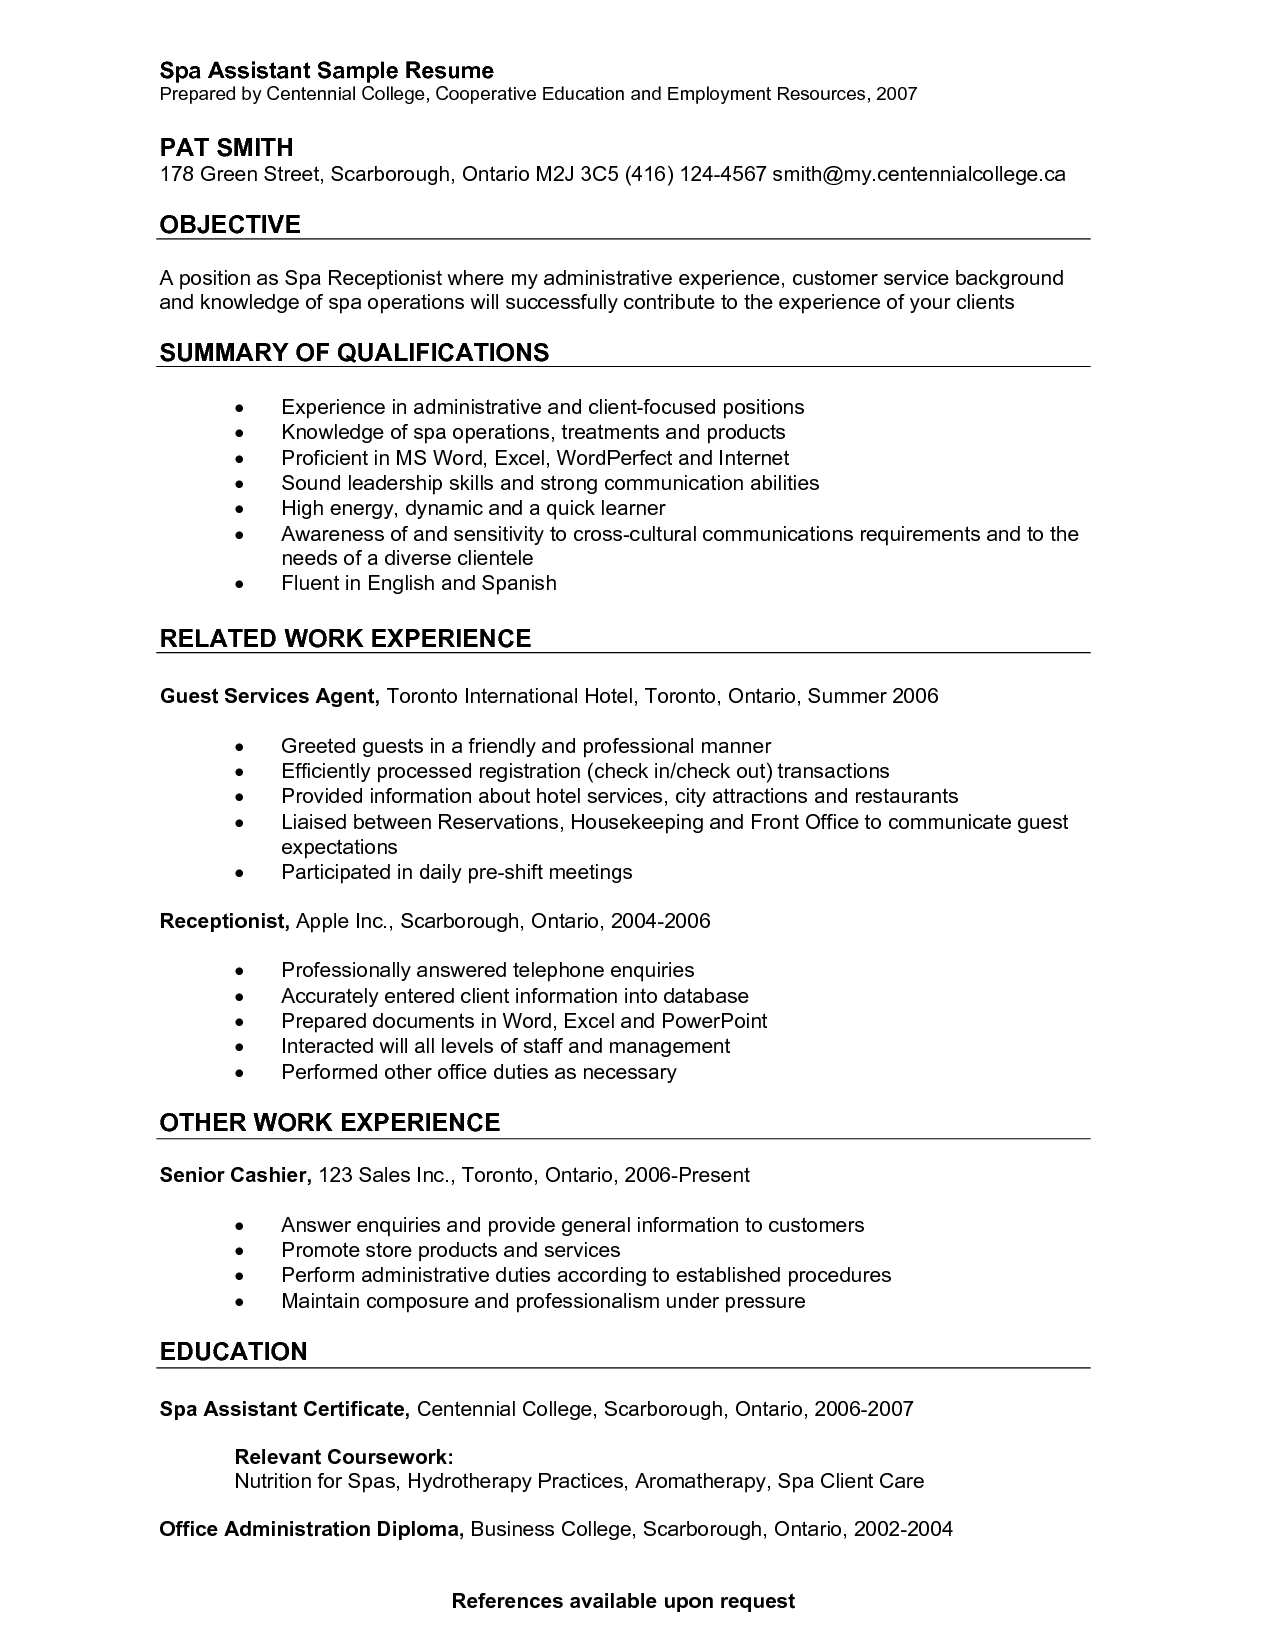 resume for concierge personal assistant sample best spa job description cover letter - Administrative Assistant Resume Objective Sample